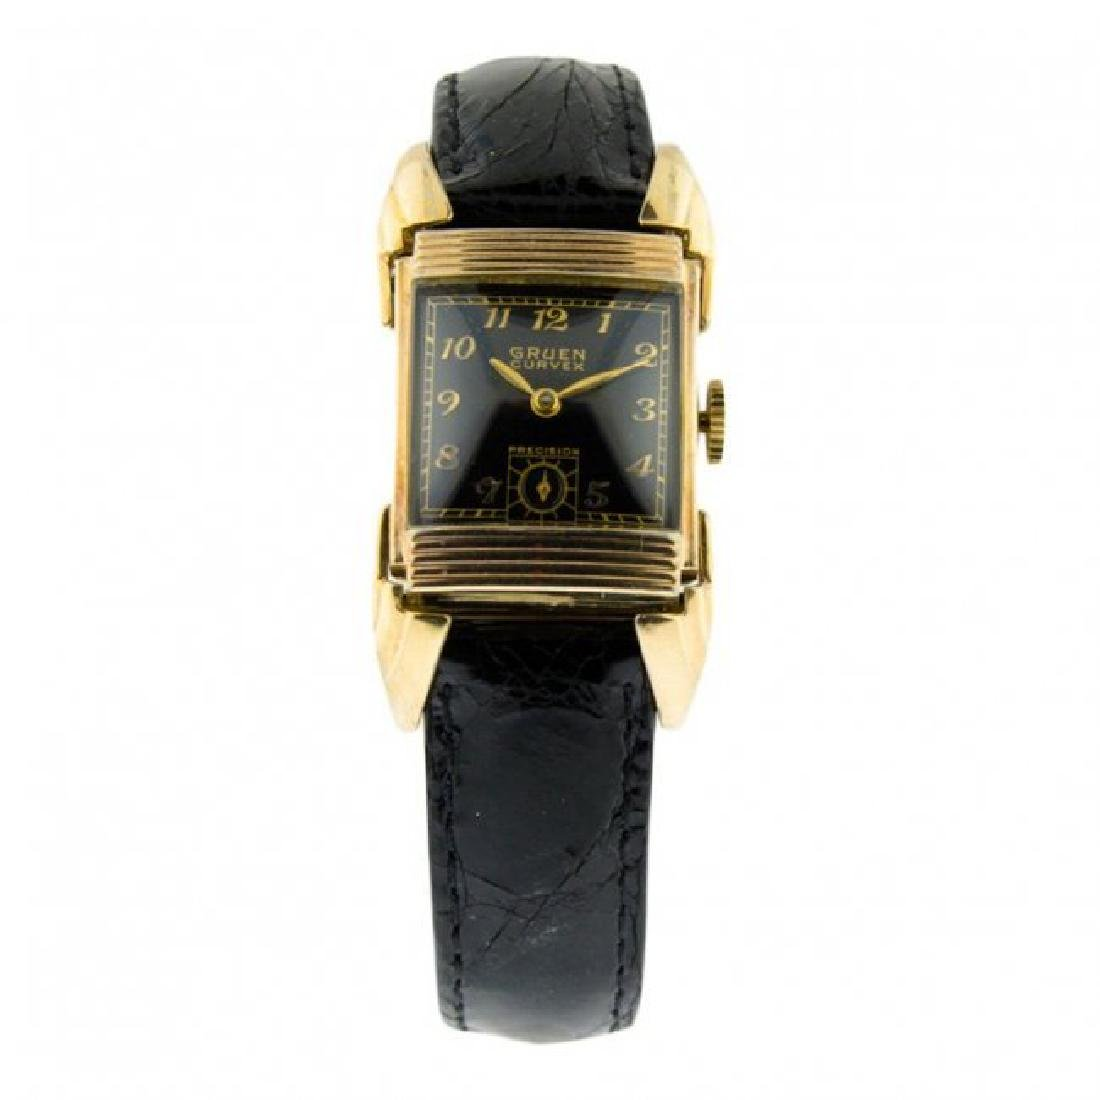 Gruen 14K Gold Drivers Watch, 1951